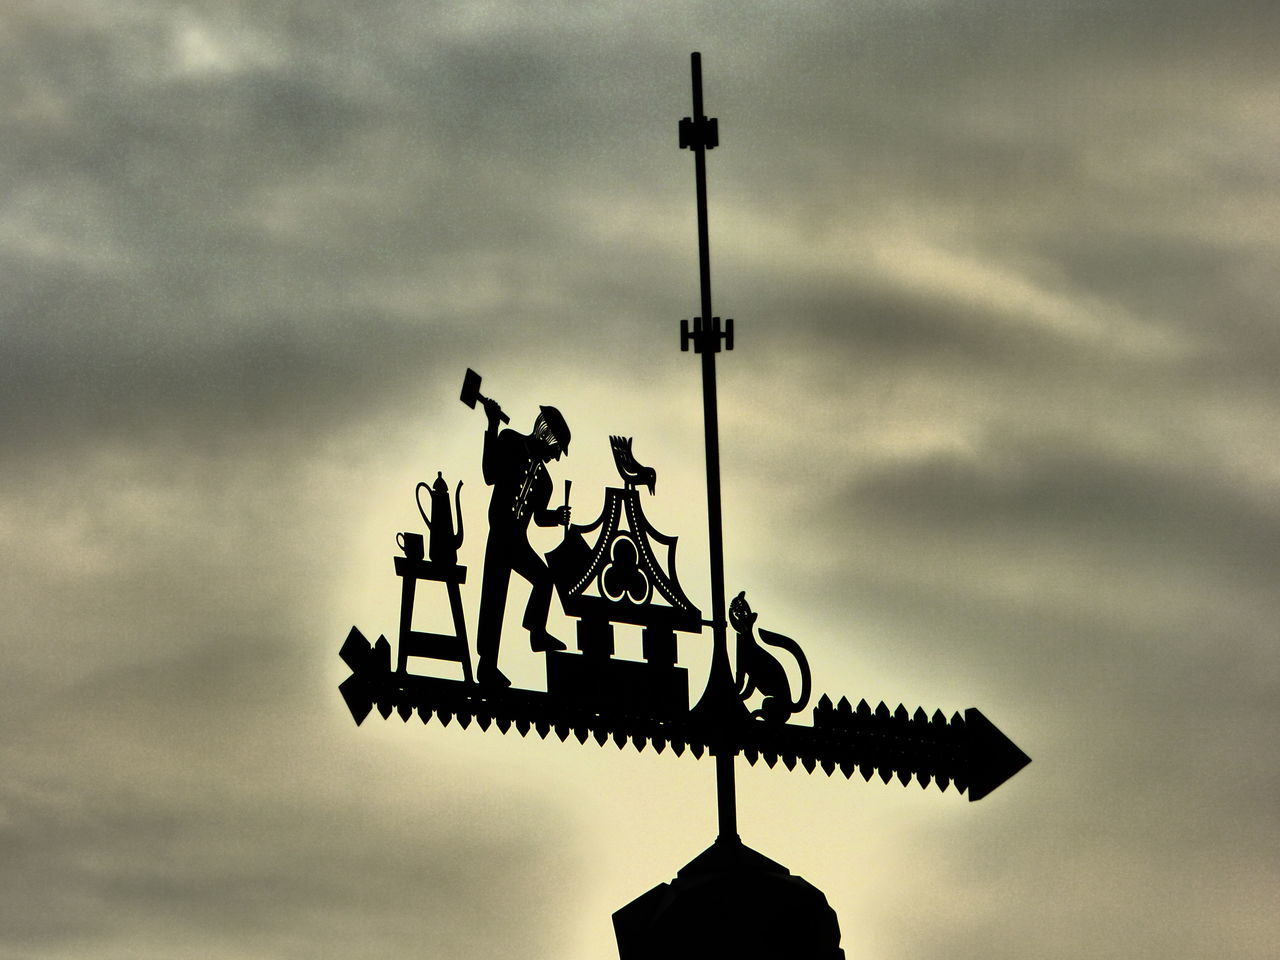 cloud - sky, sky, silhouette, direction, low angle view, statue, outdoors, weather vane, no people, sculpture, day, architecture, sunset, built structure, building exterior